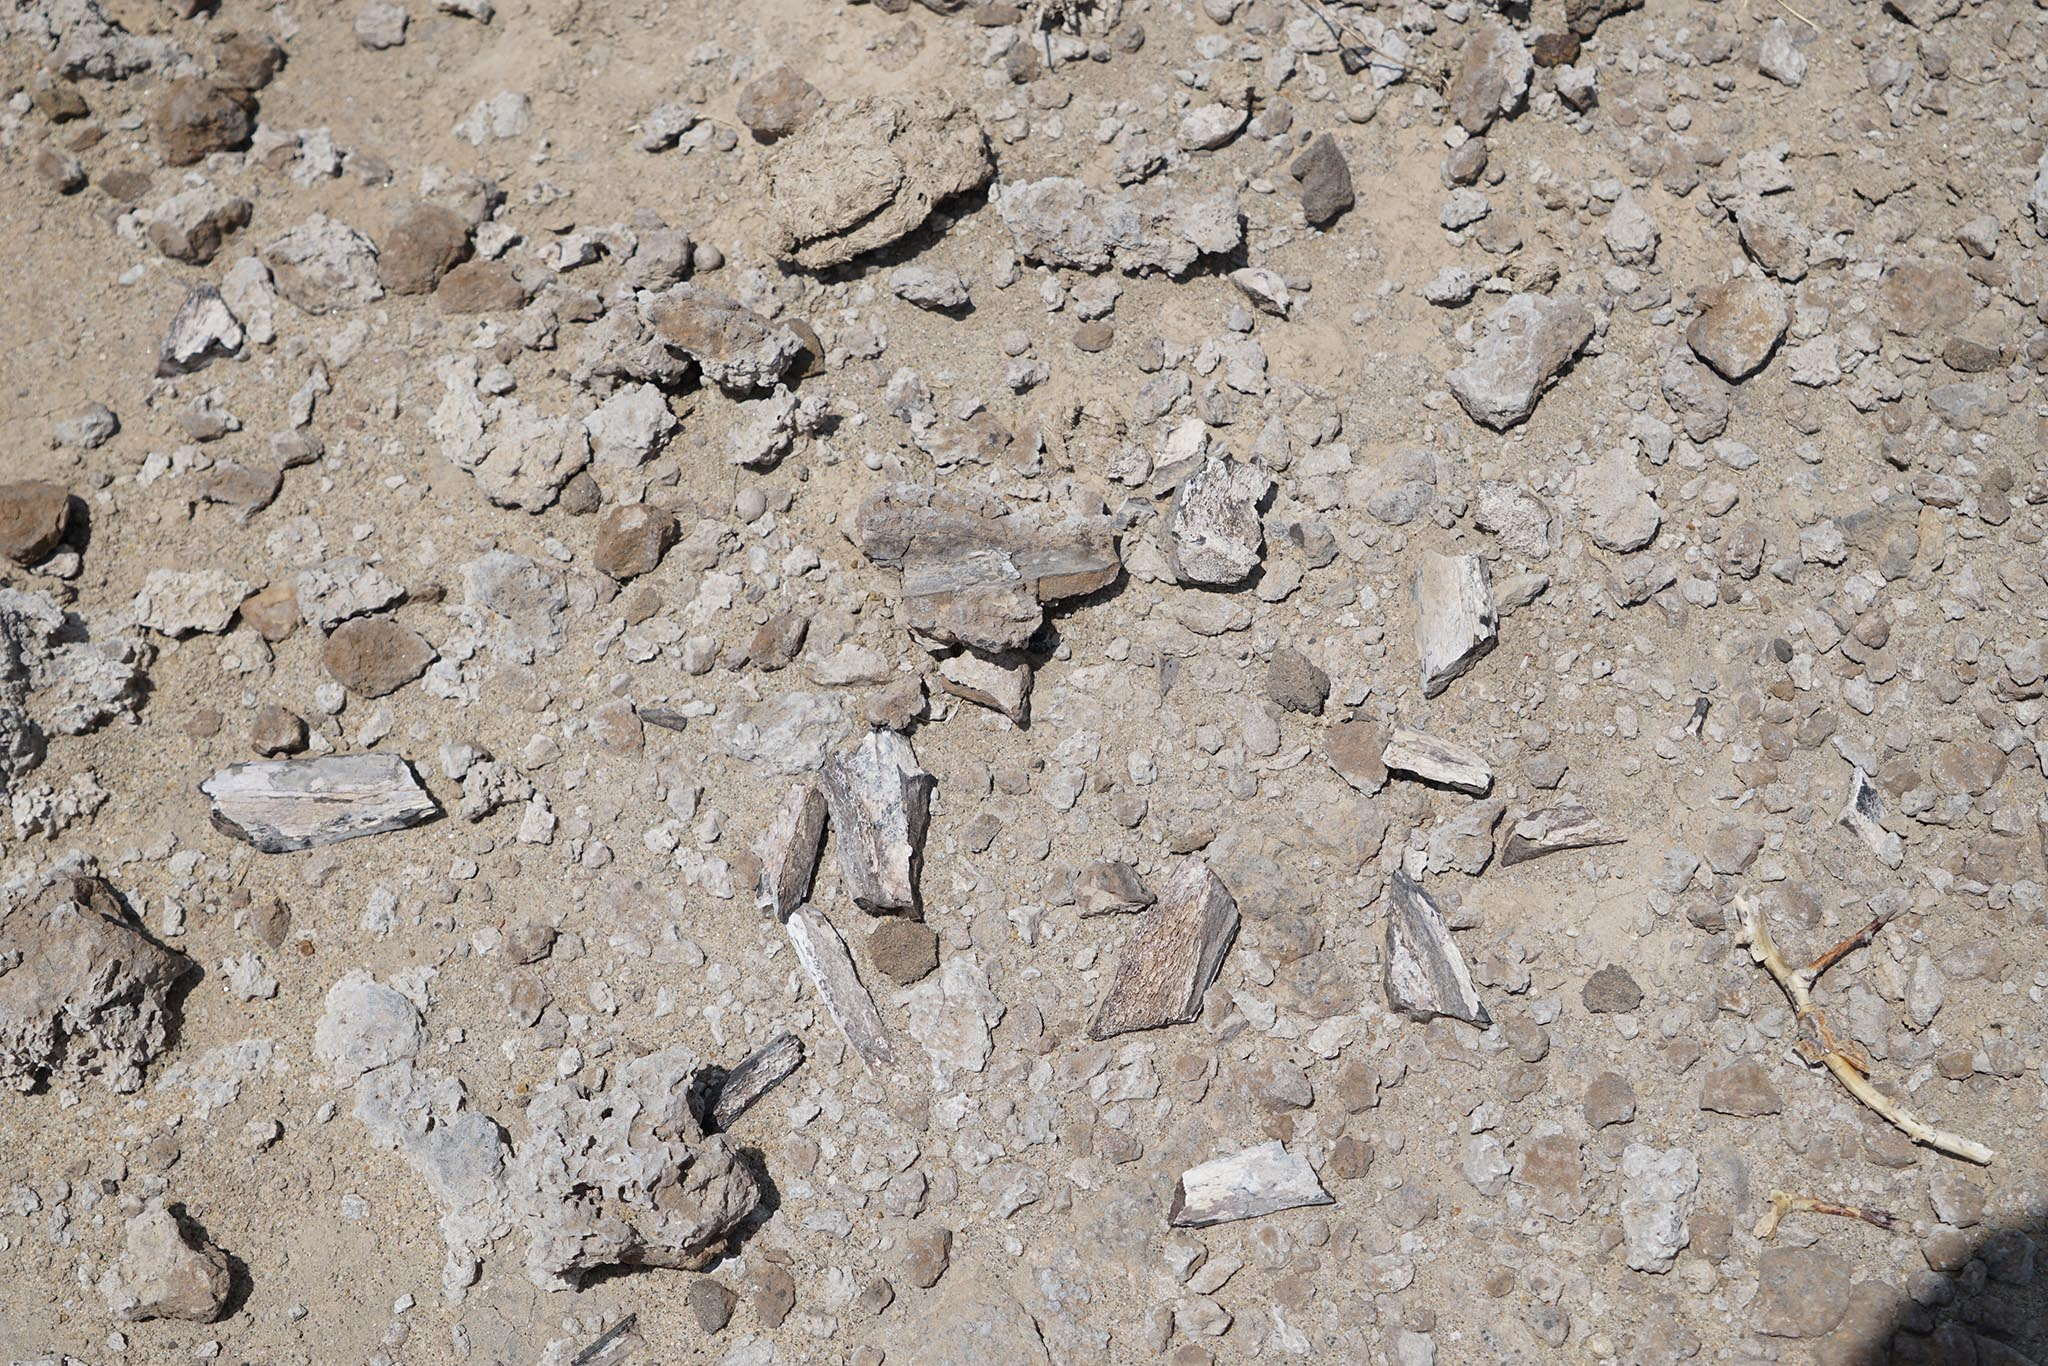 fossil bones found during ground truthing